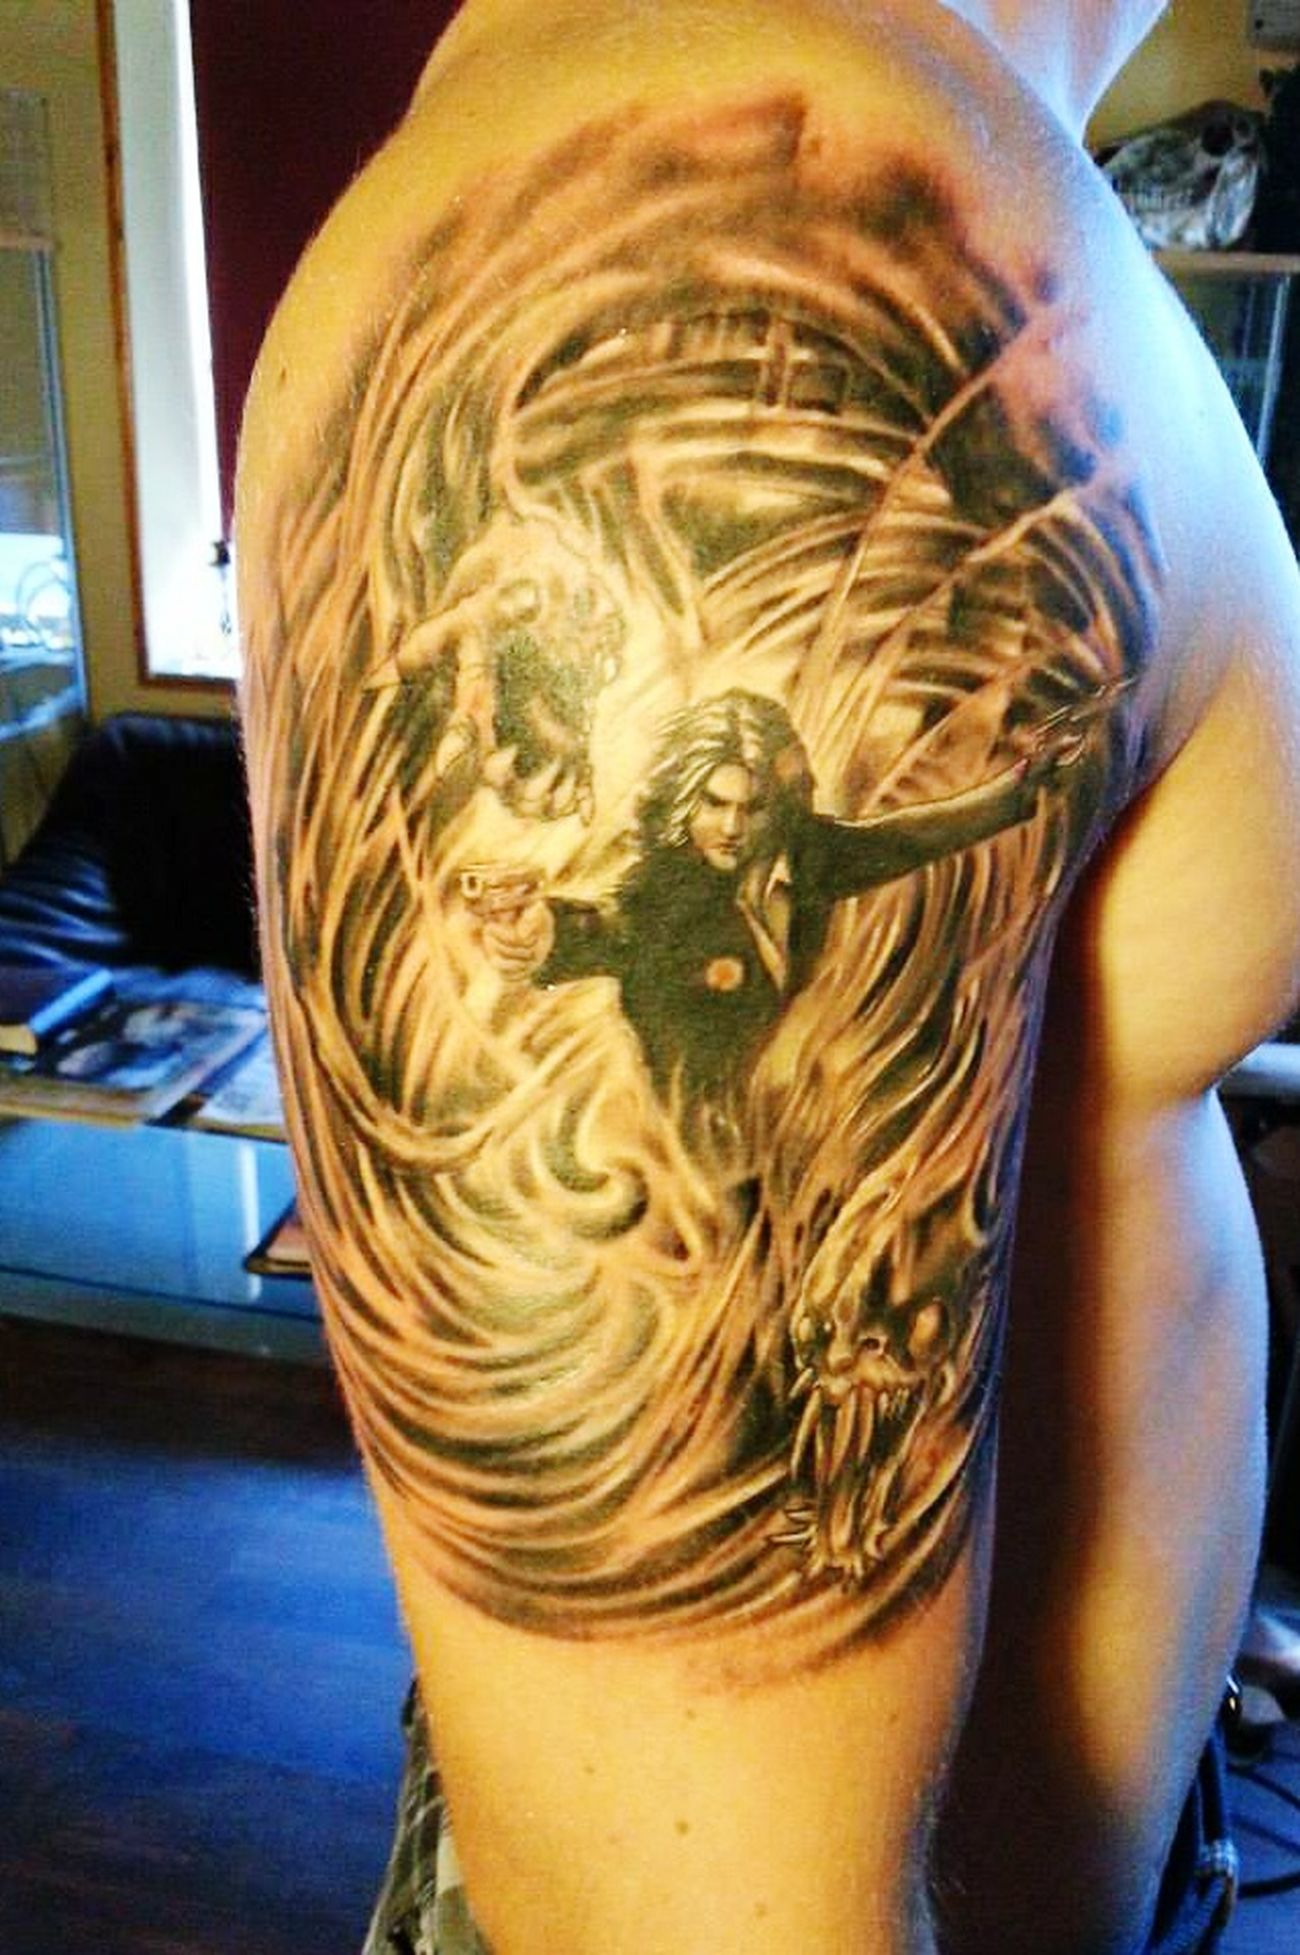 Tattoo The Darkness Jackie Estacado People Art Tattoos